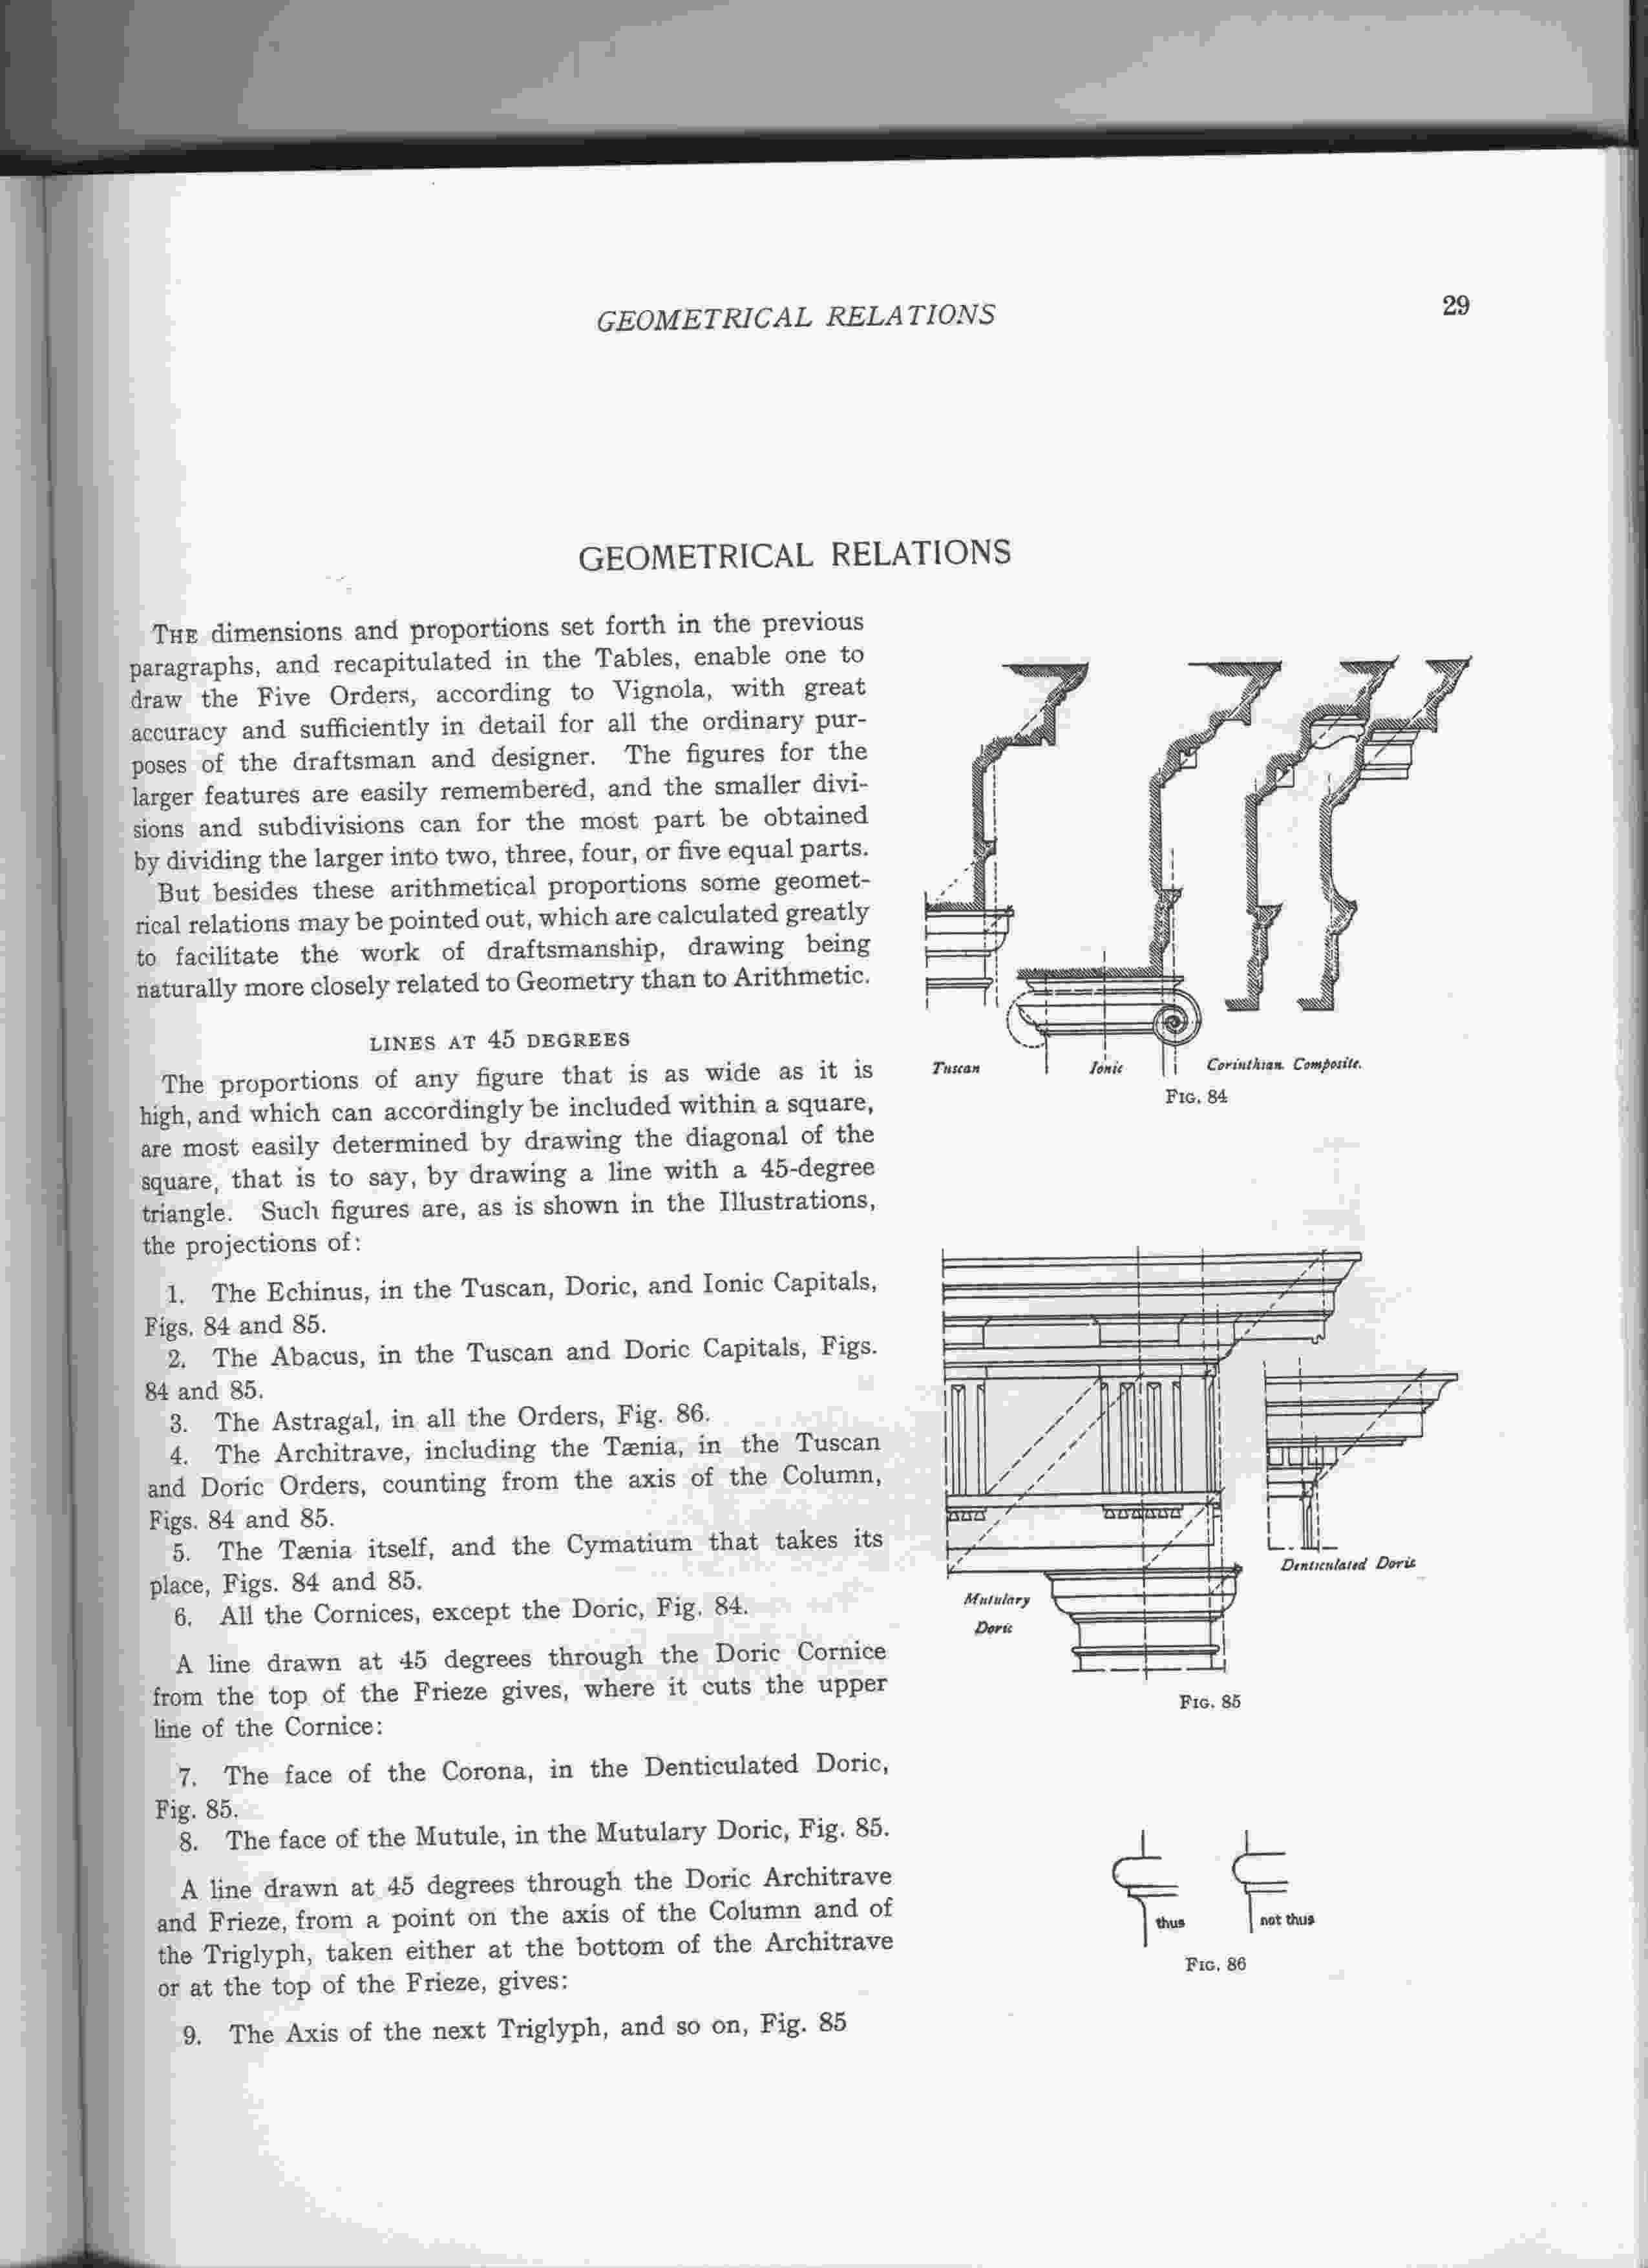 By Brians Request, Mantel, Over Mantel-american-vignola-page-29.jpeg